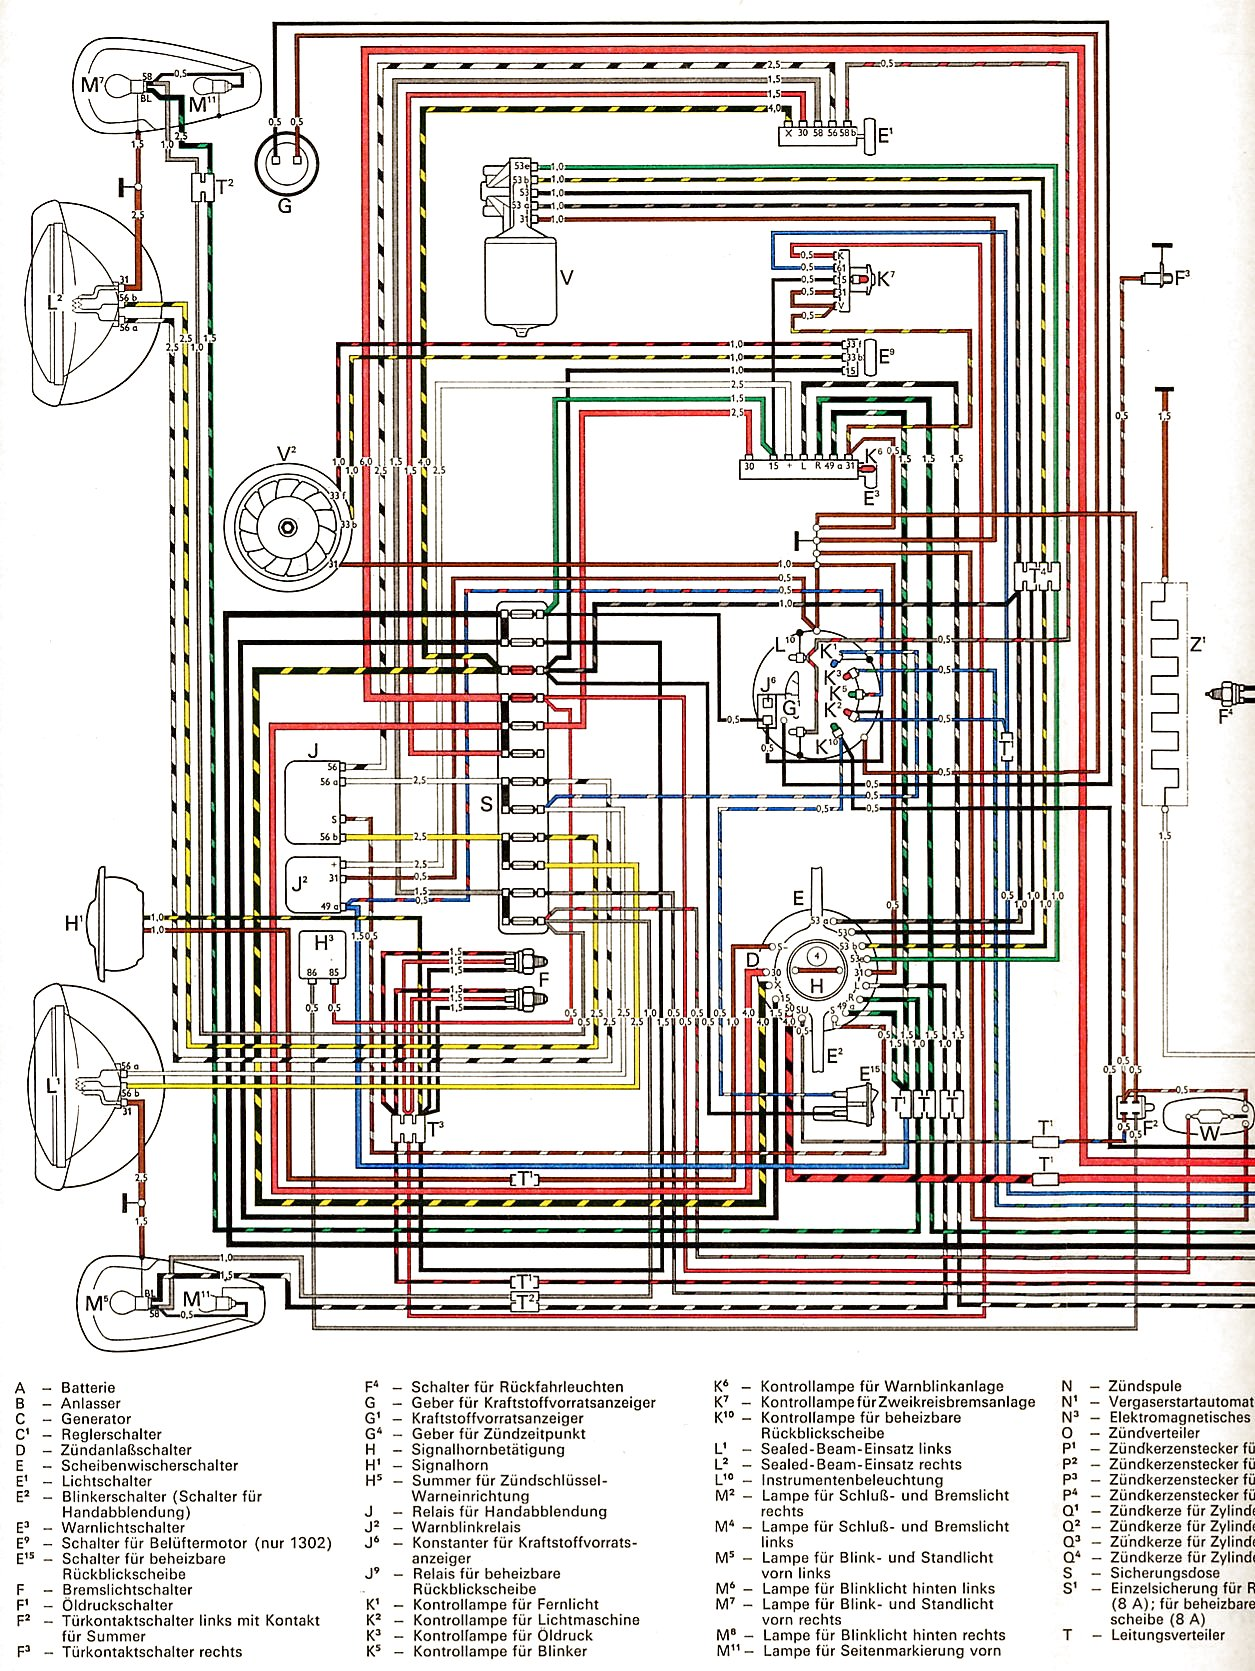 hight resolution of 1974 vw fuse box layout wiring diagrams u2022 rh laurafinlay co uk 2000 vw jetta fuse